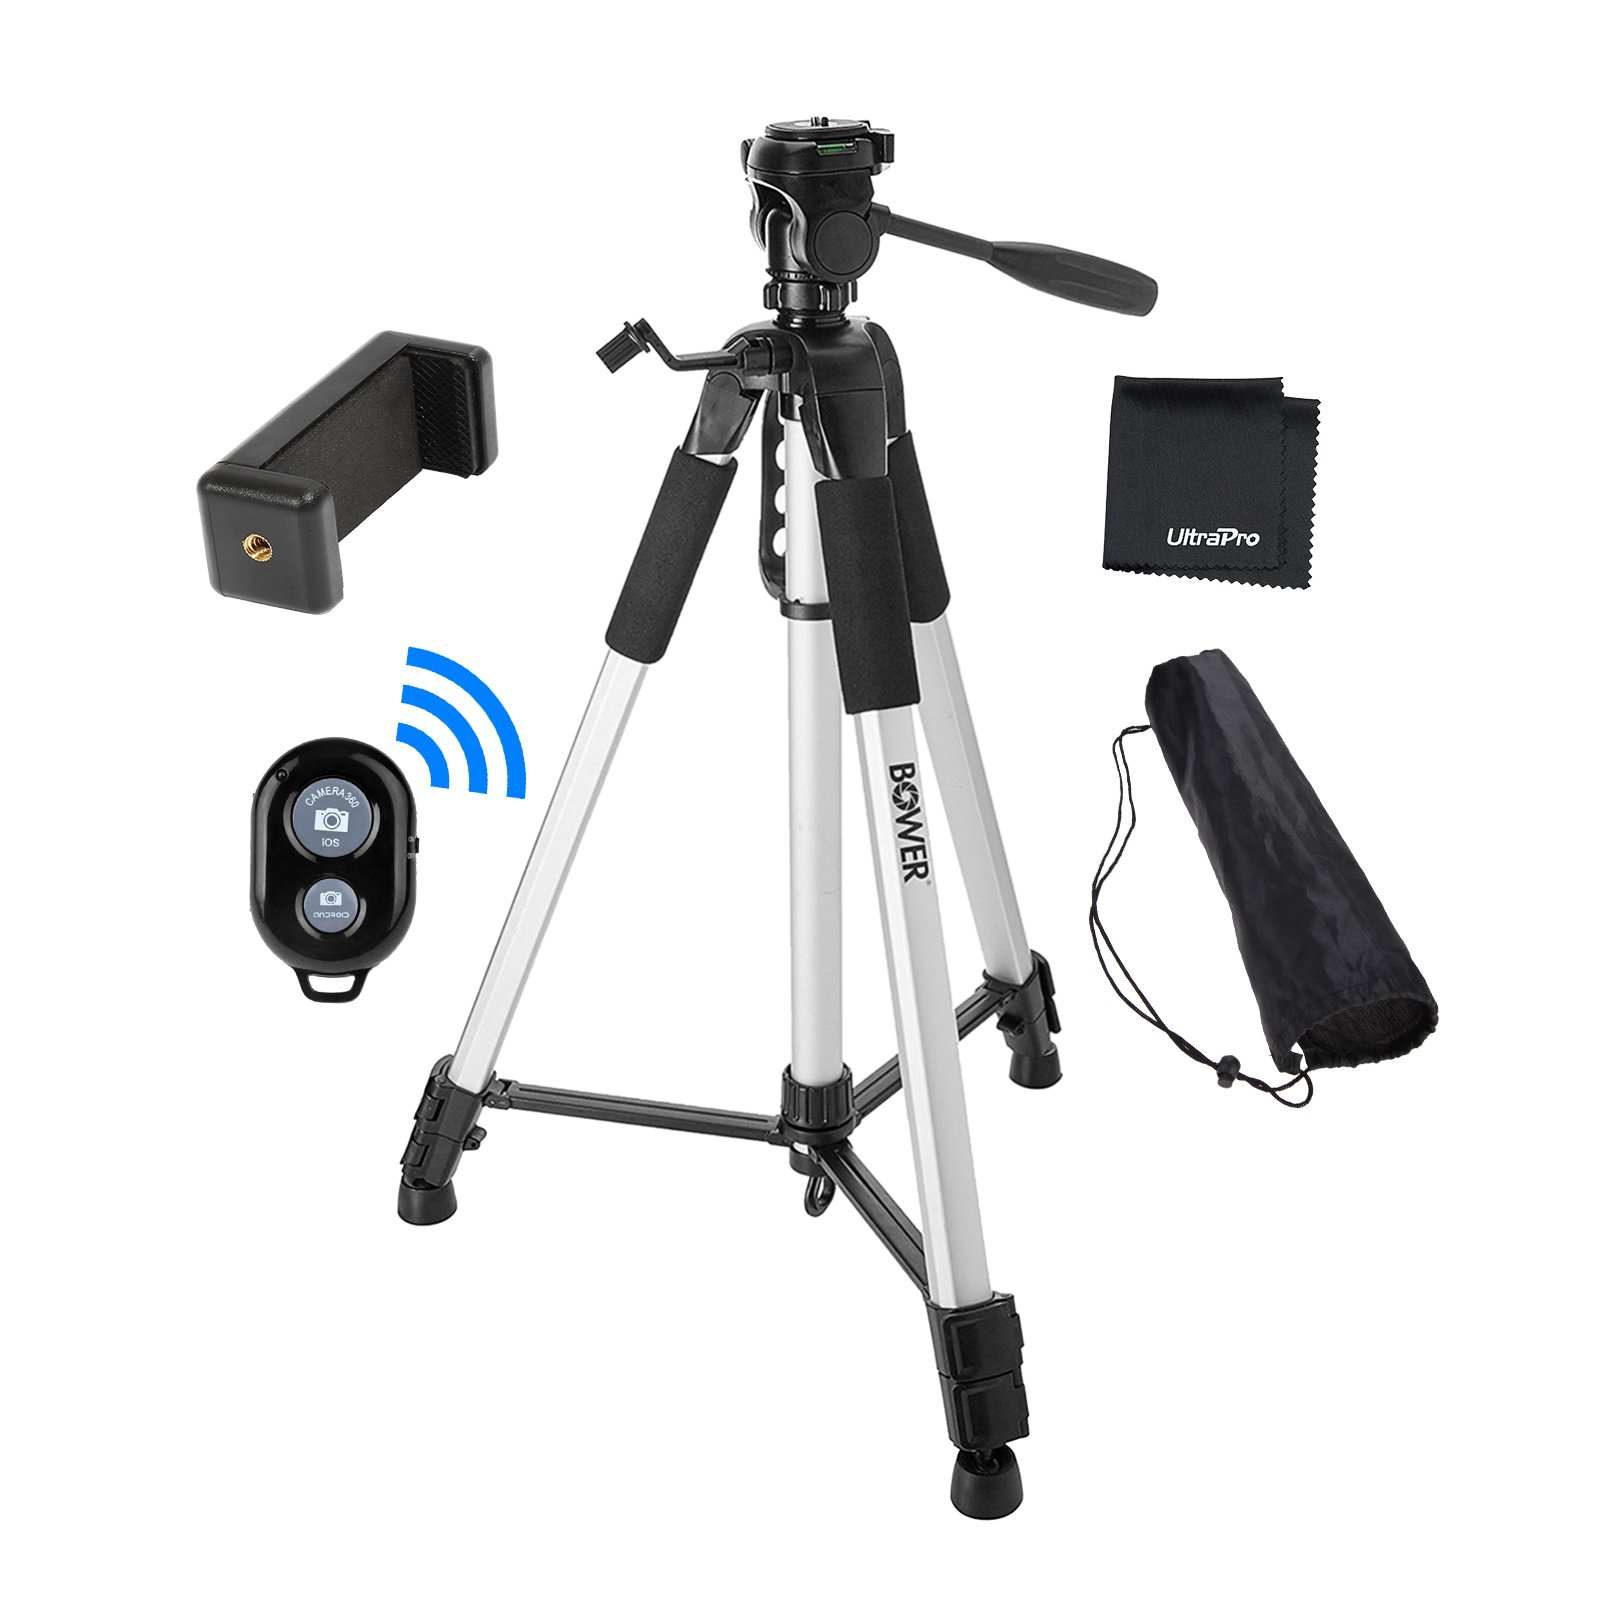 UltraPro 72'' Inch Heavy-Duty Aluminum Camera Tripod with Universal Smartphone Mount + Bluetooth Remote Control Camera Shutter for All Smartphones, Includes UltraPro Bonus Microfiber Cleaning Cloth by UltraPro